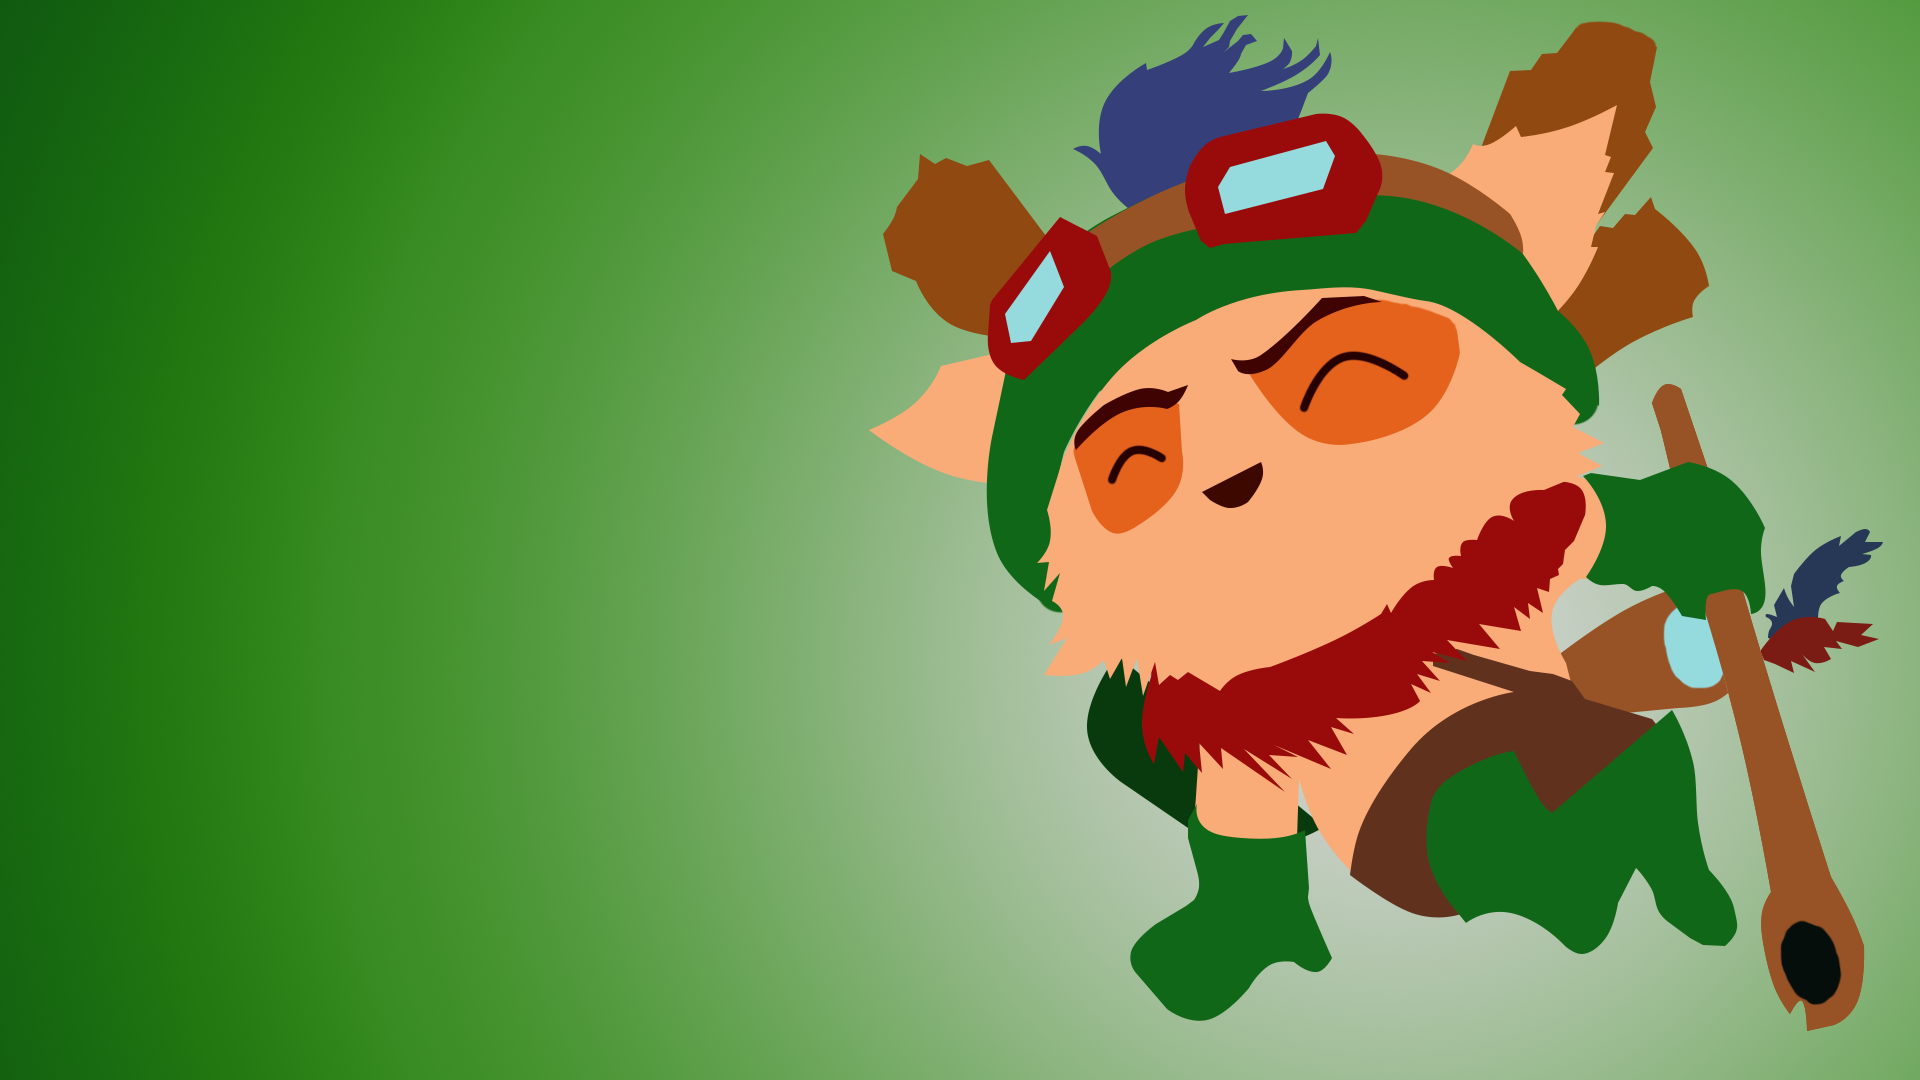 teemo wallpaper - photo #13